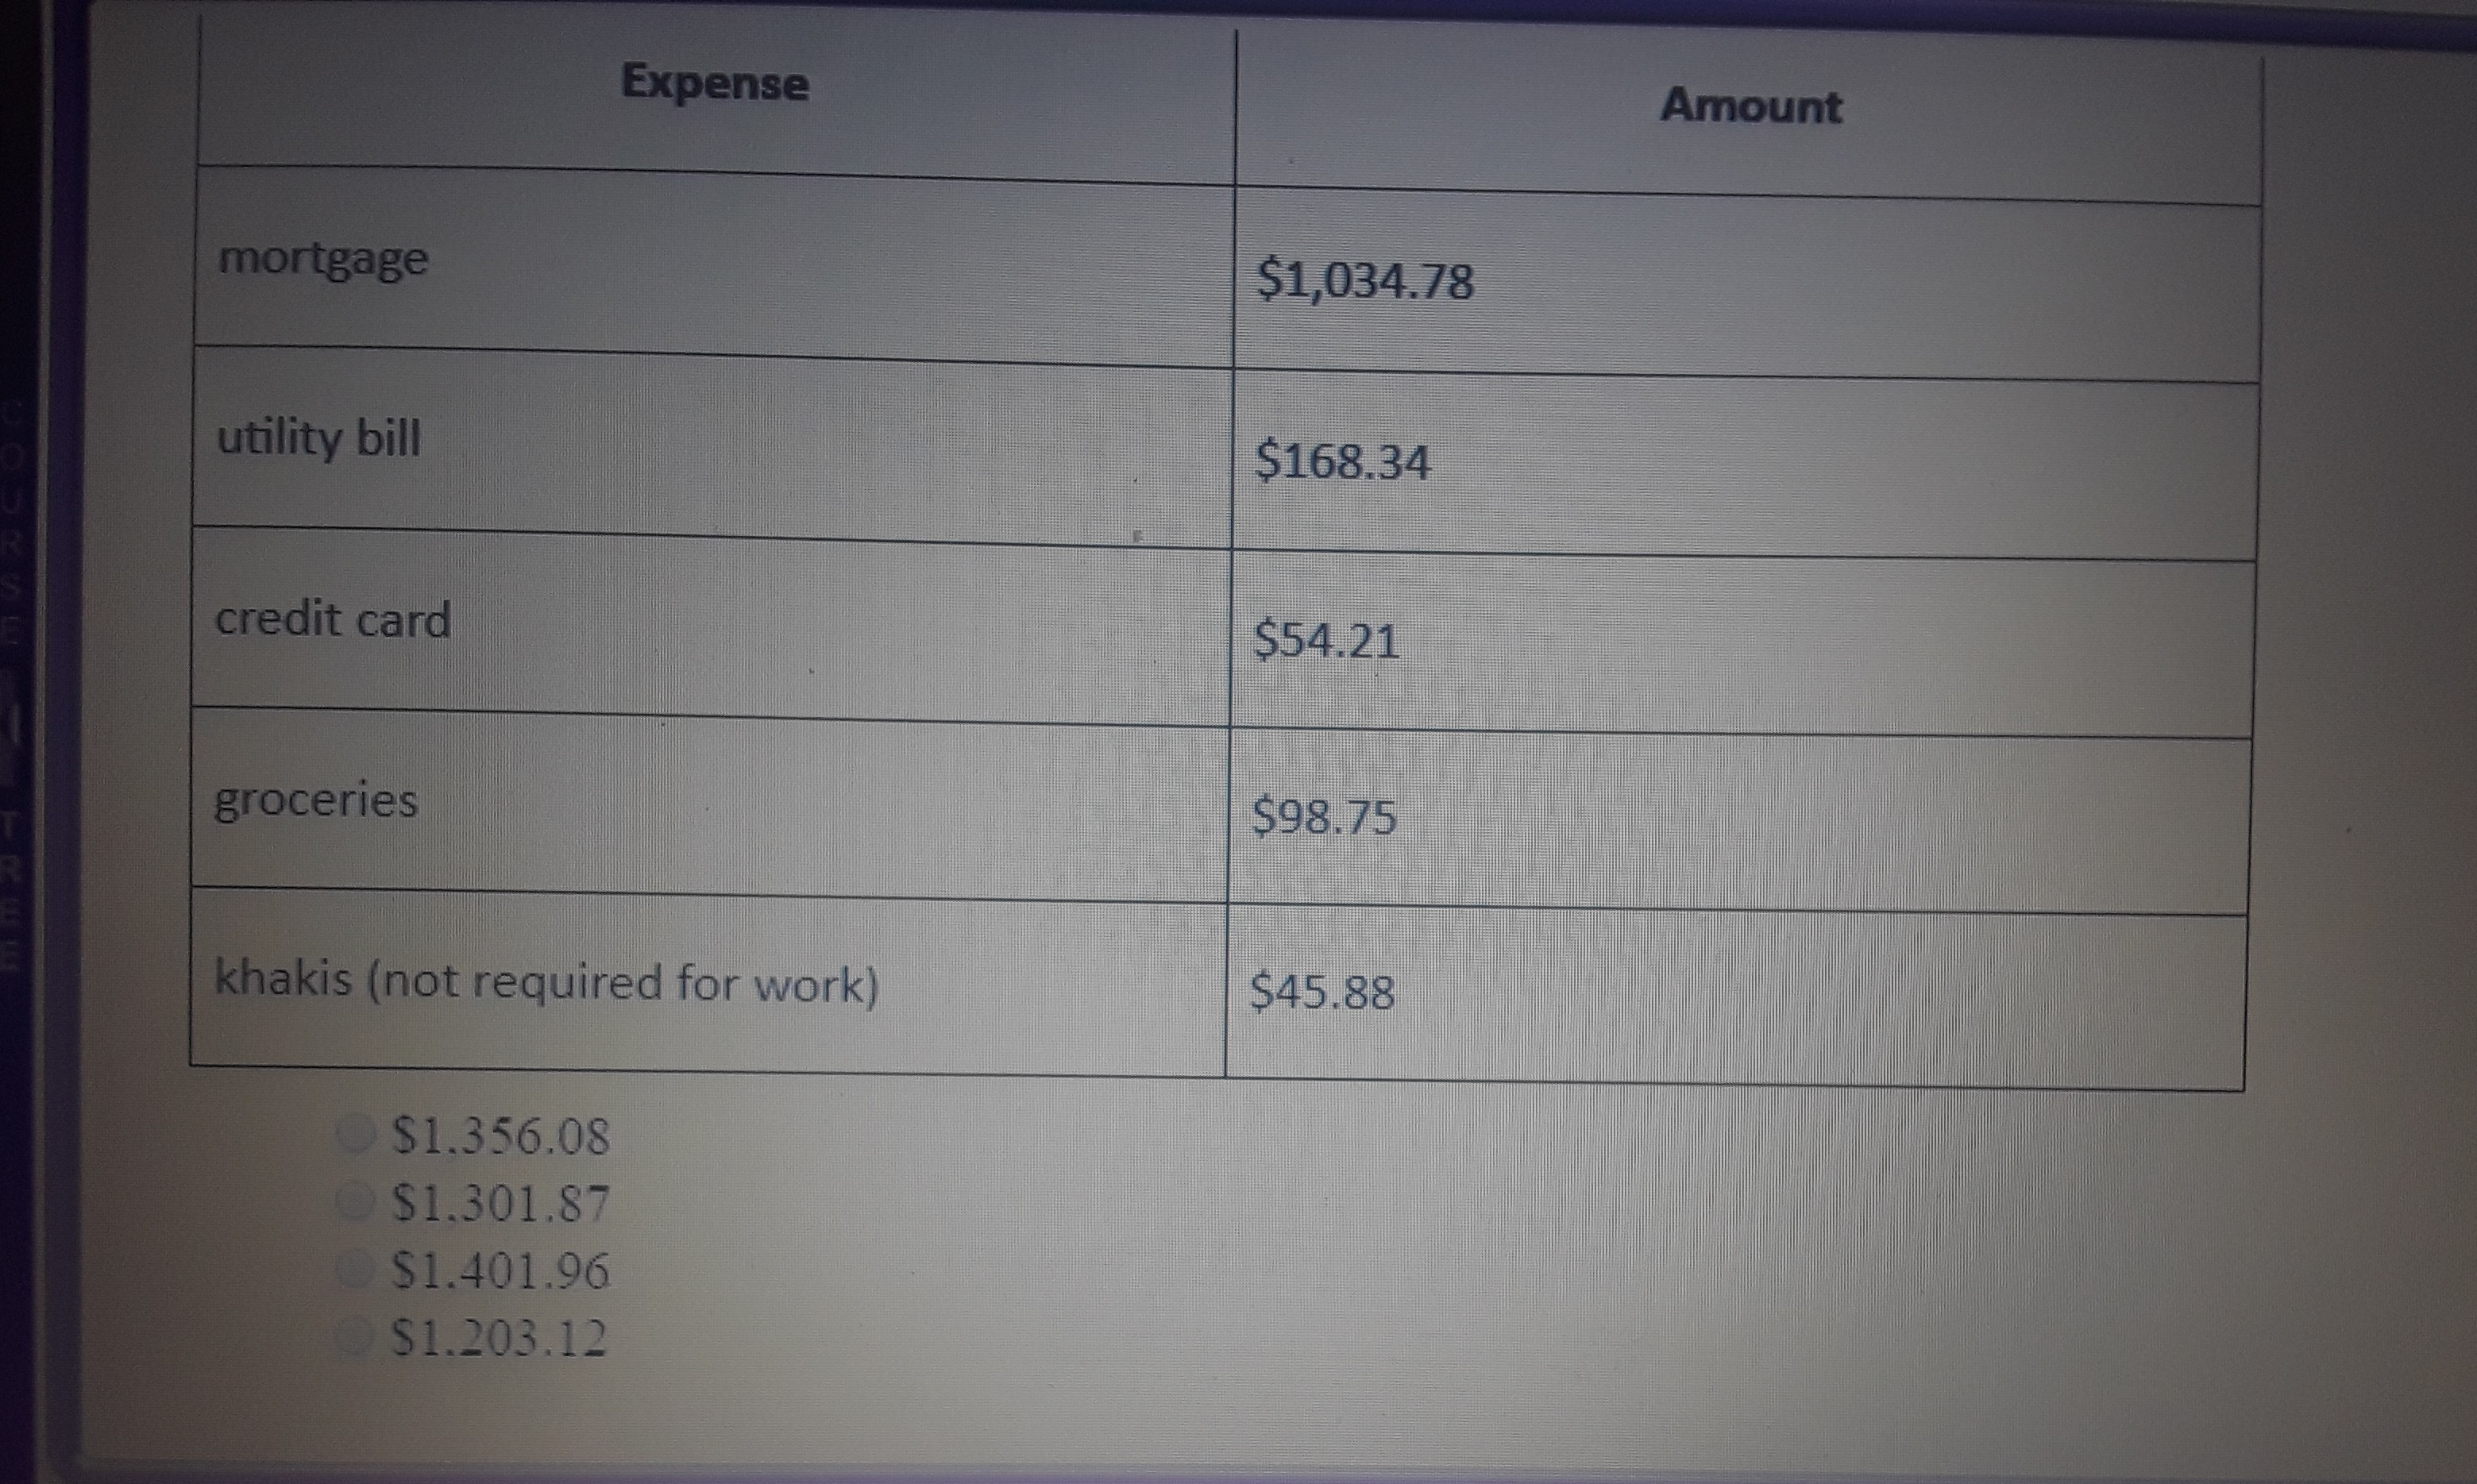 what is the total of your fixed expenses 1 356 08 1 301 87 1 401 96